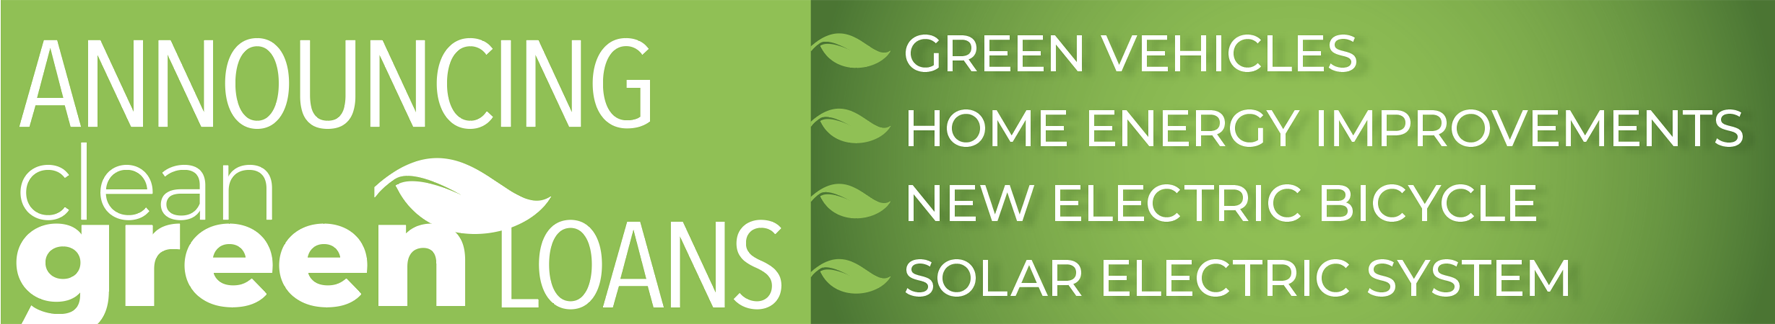 Announcing Clean Green Loans